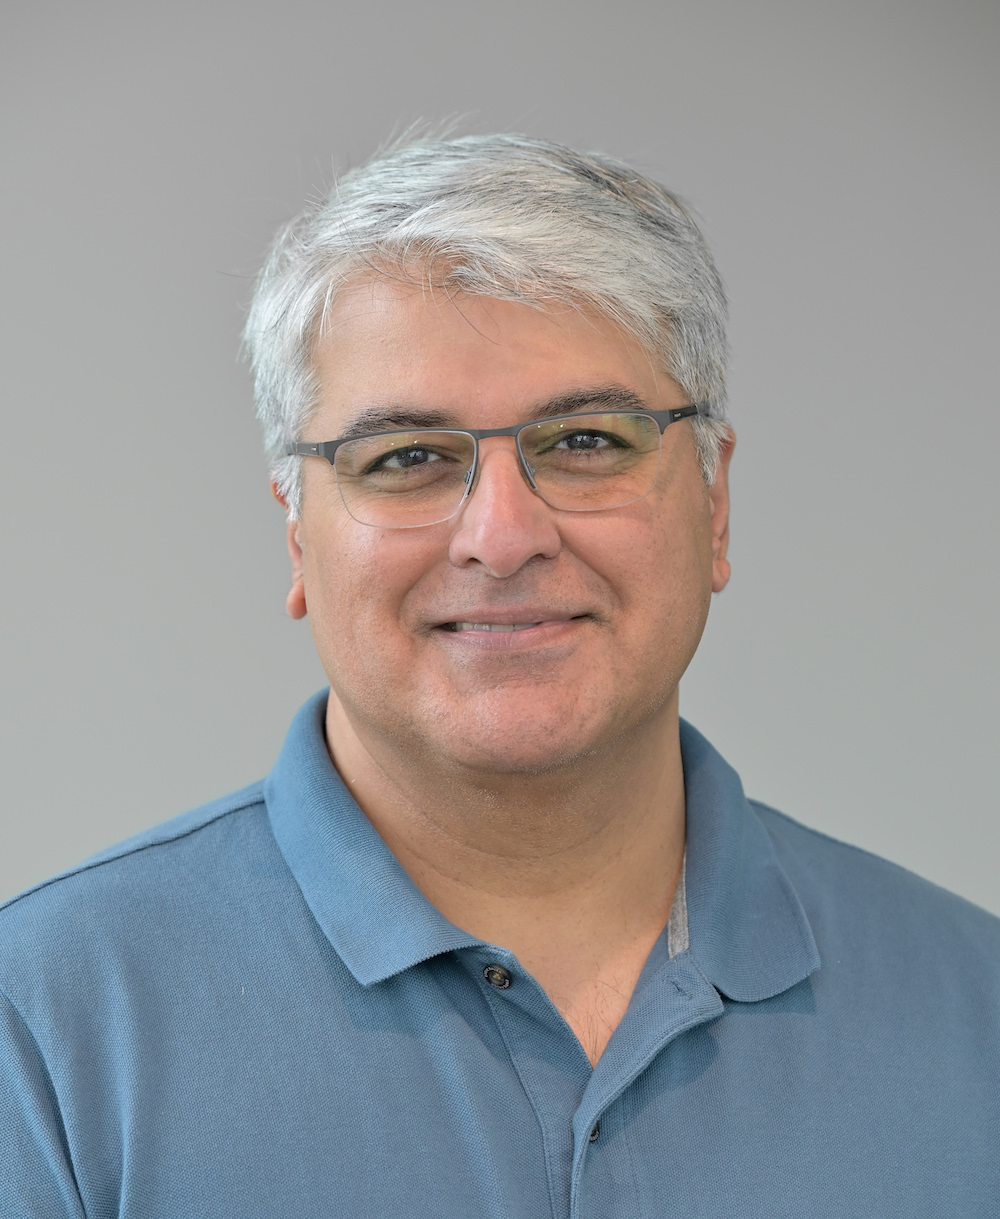 Picture of Sameer Antani, PhD